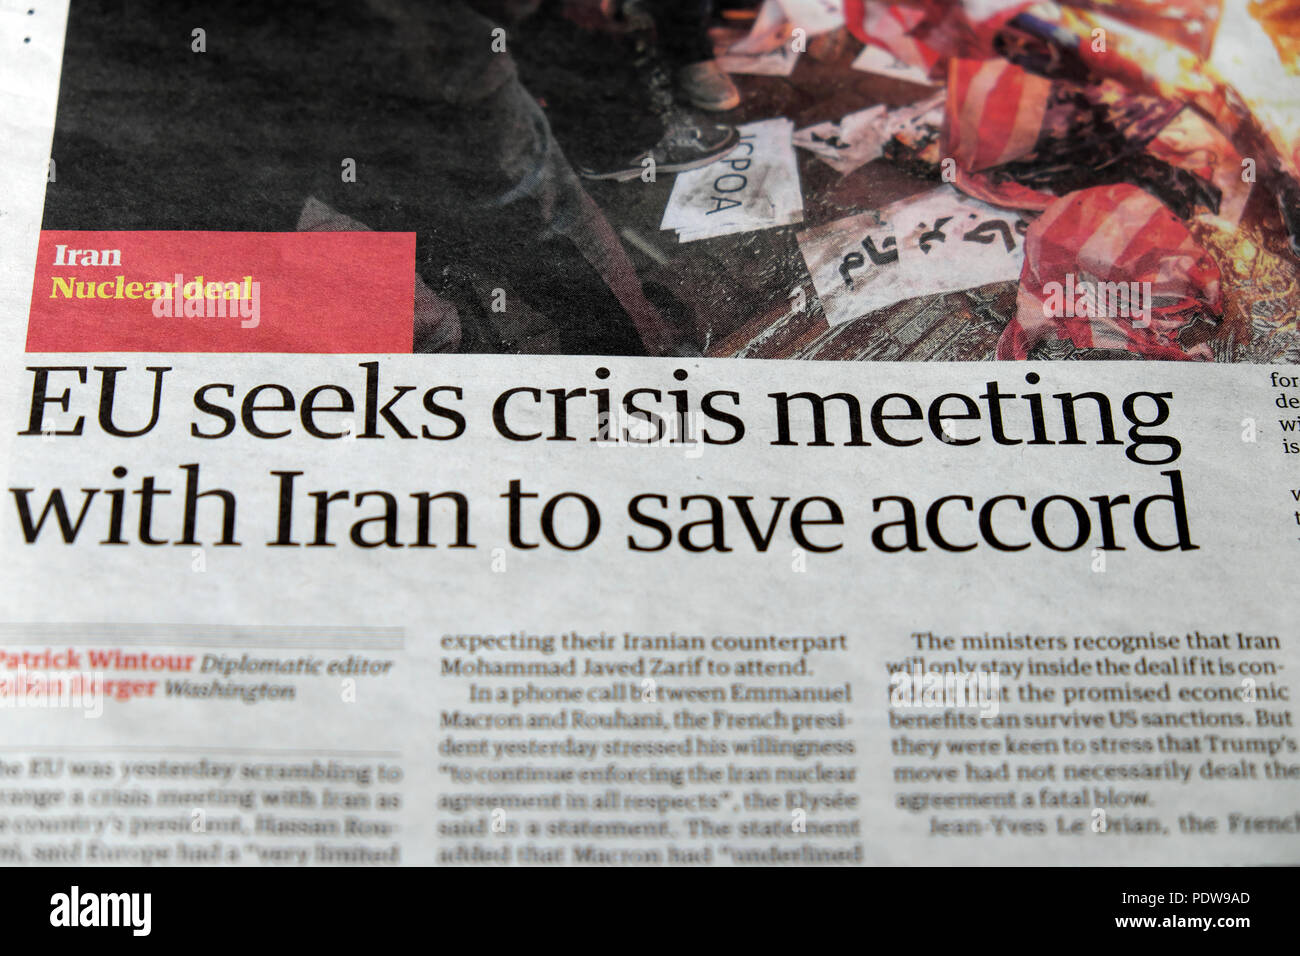 'EU seeks crisis meeting with Iran to save accord' Iran nuclear deal newspaper headline in the Guardian paper in London UK - Stock Image